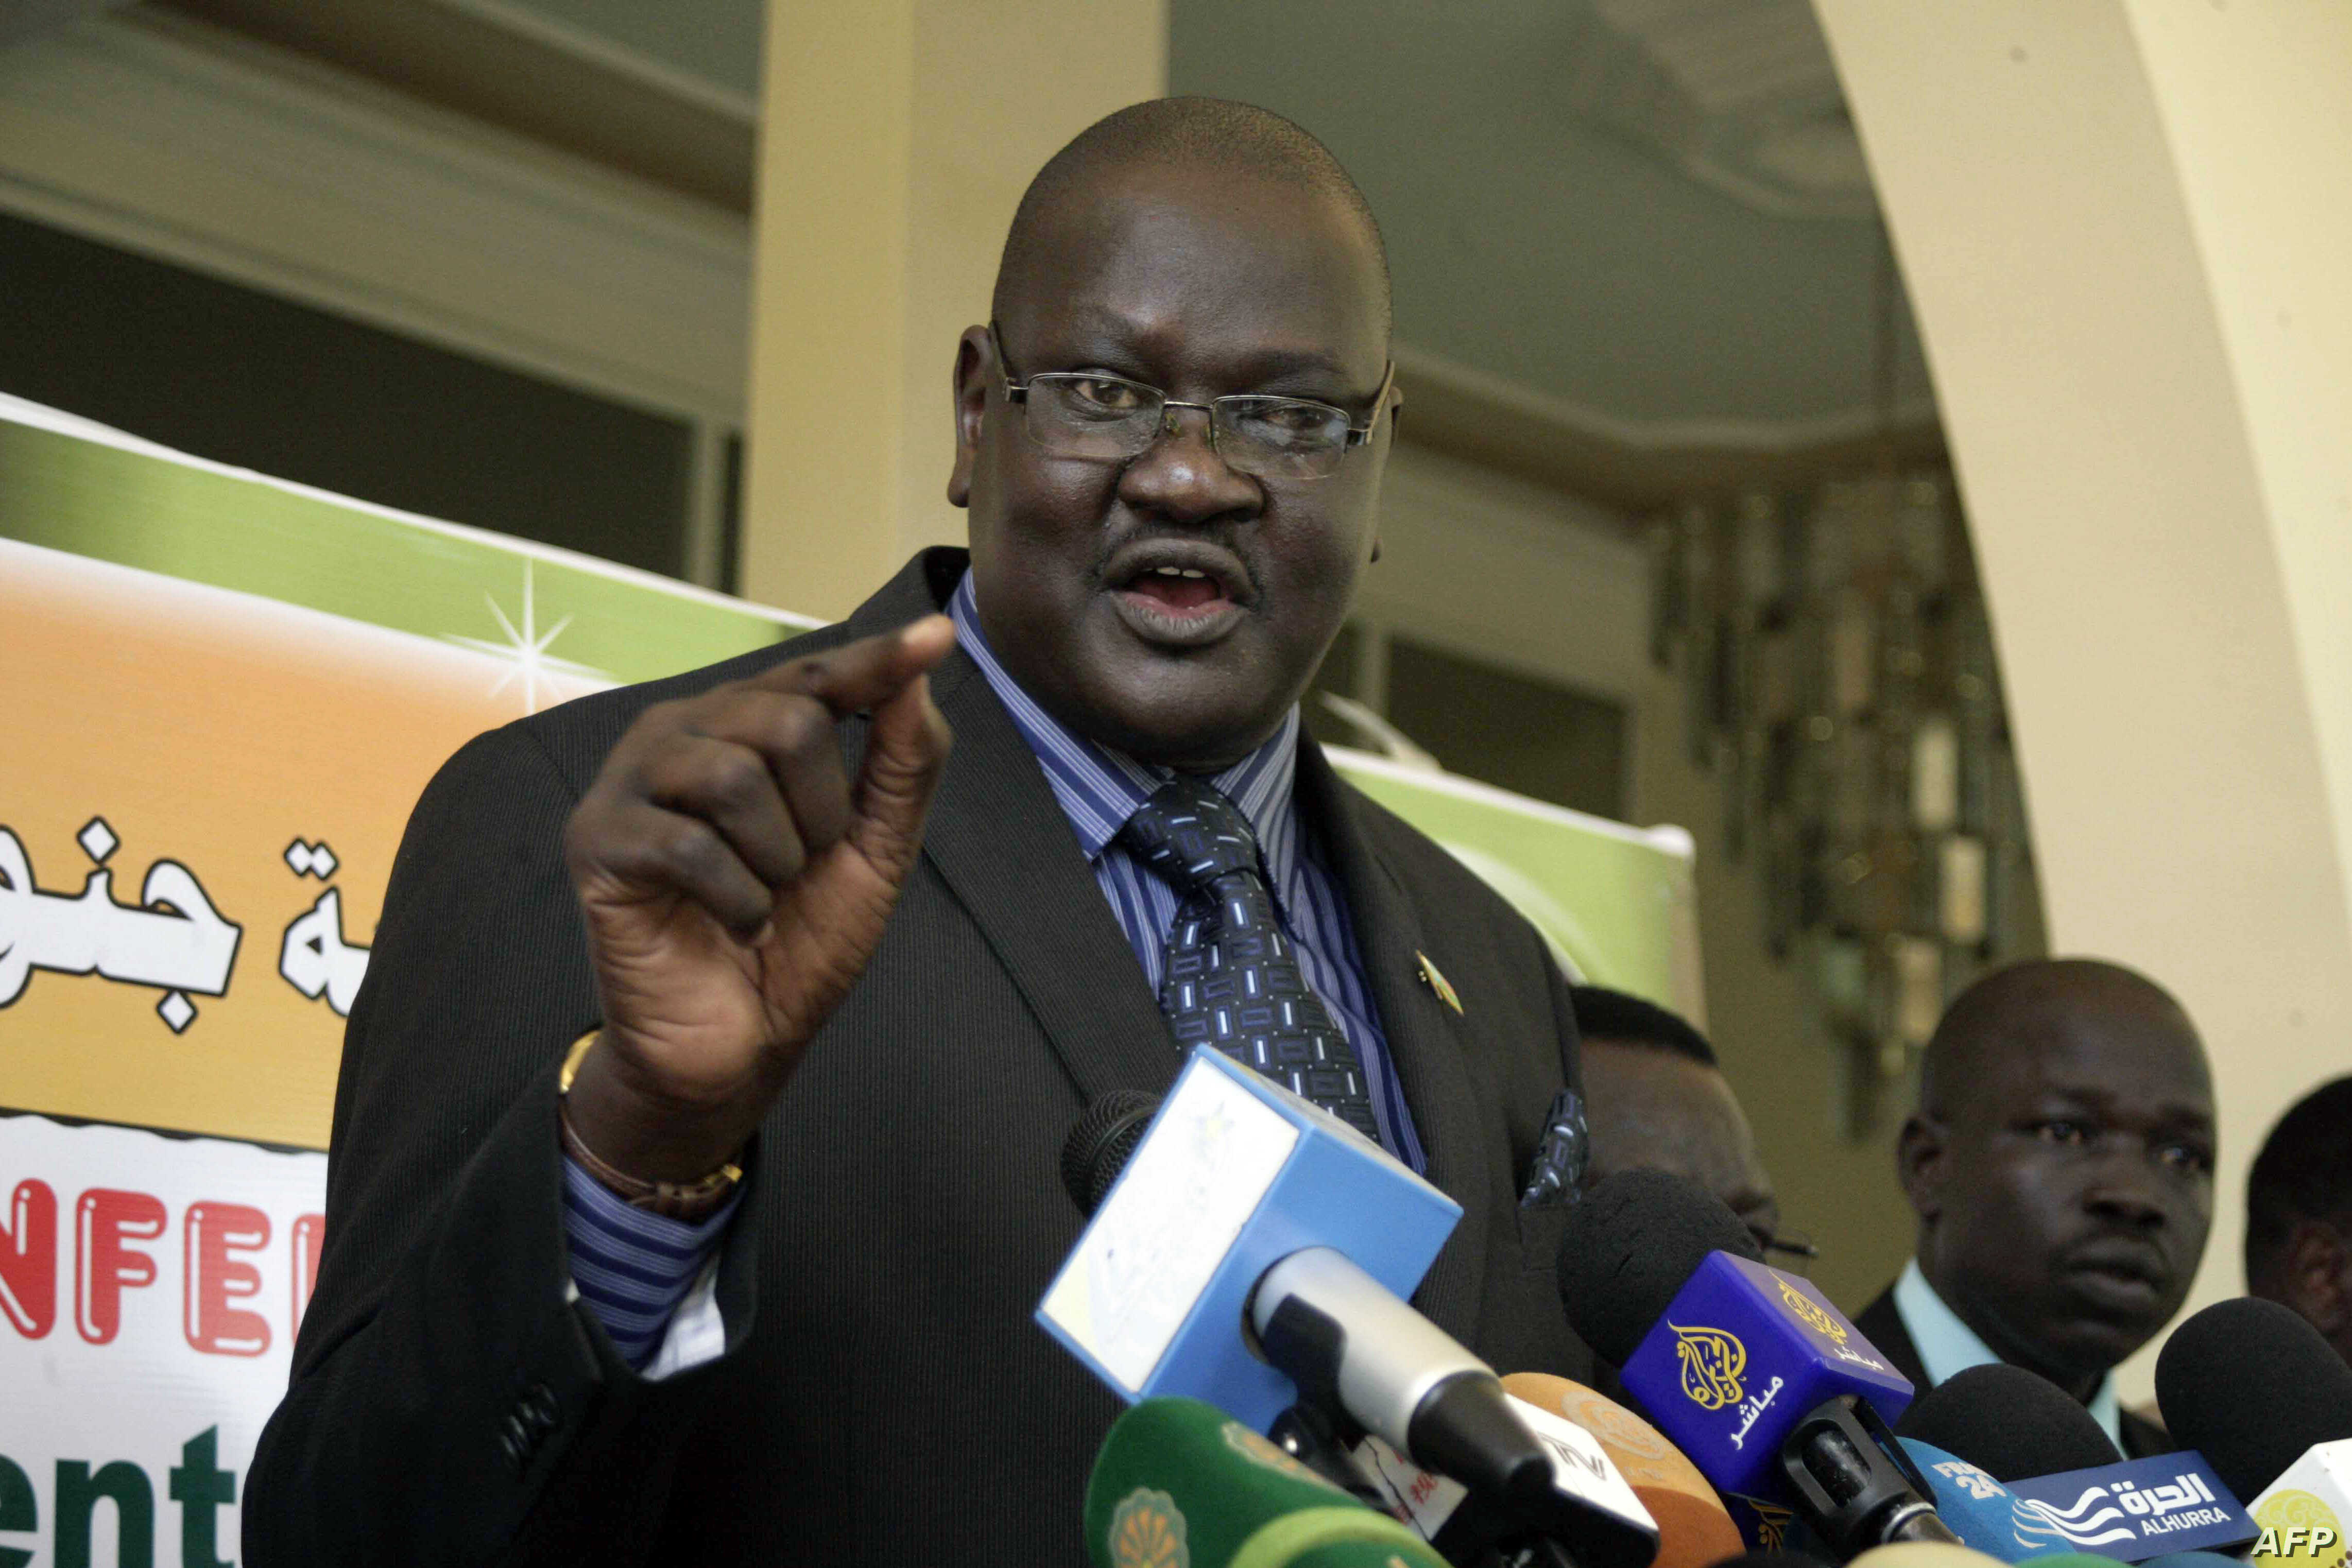 FILE - Ateny Wek Ateny, press secretary to South Sudan President Salva Kiir, speaks during a press conference in the Sudanese capital, Khartoum, March 2, 2014.